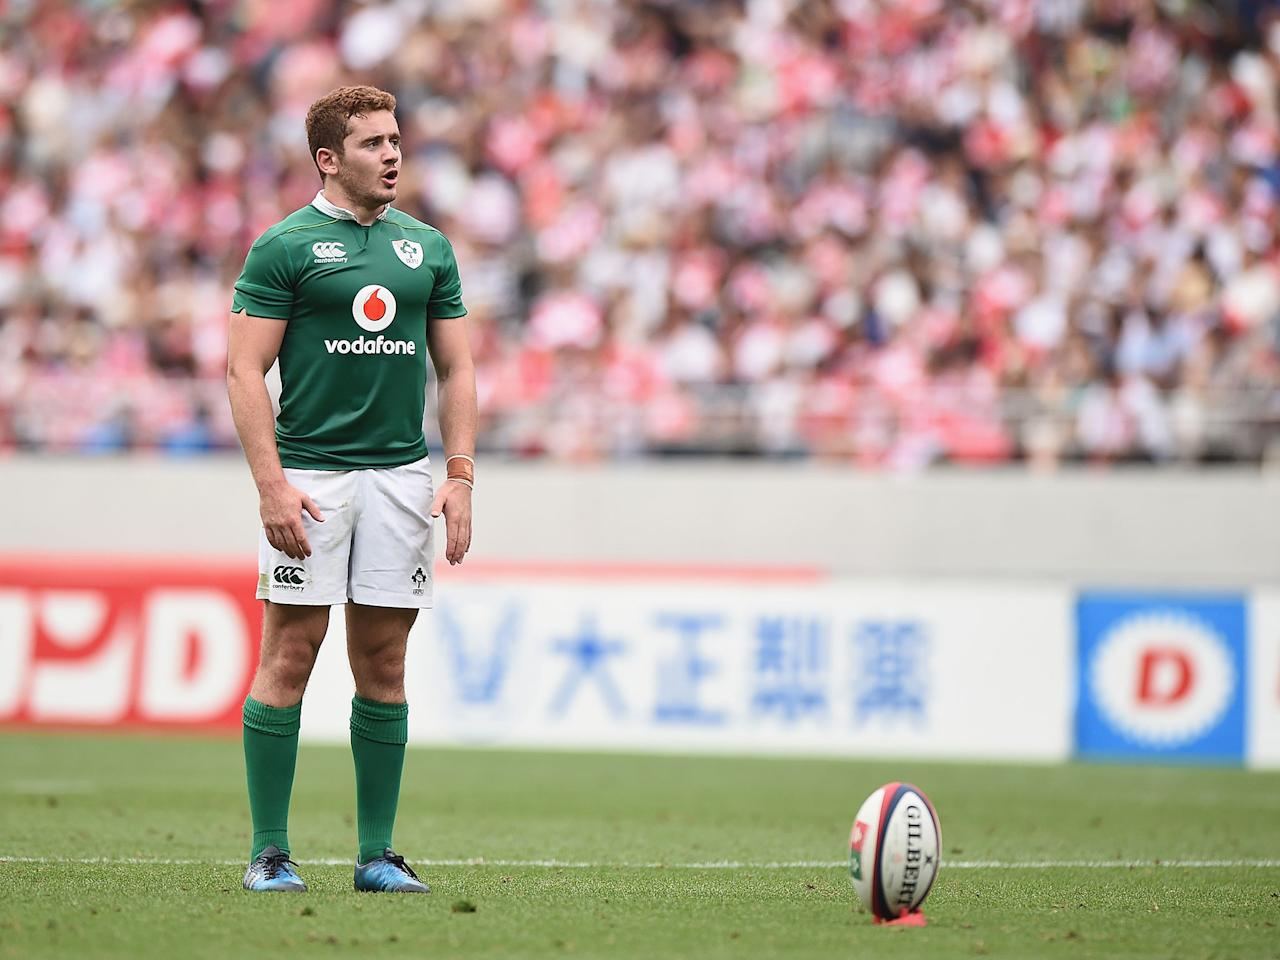 Ireland rugby players Paddy Jackson and Stuart Olding to be prosecuted for rape